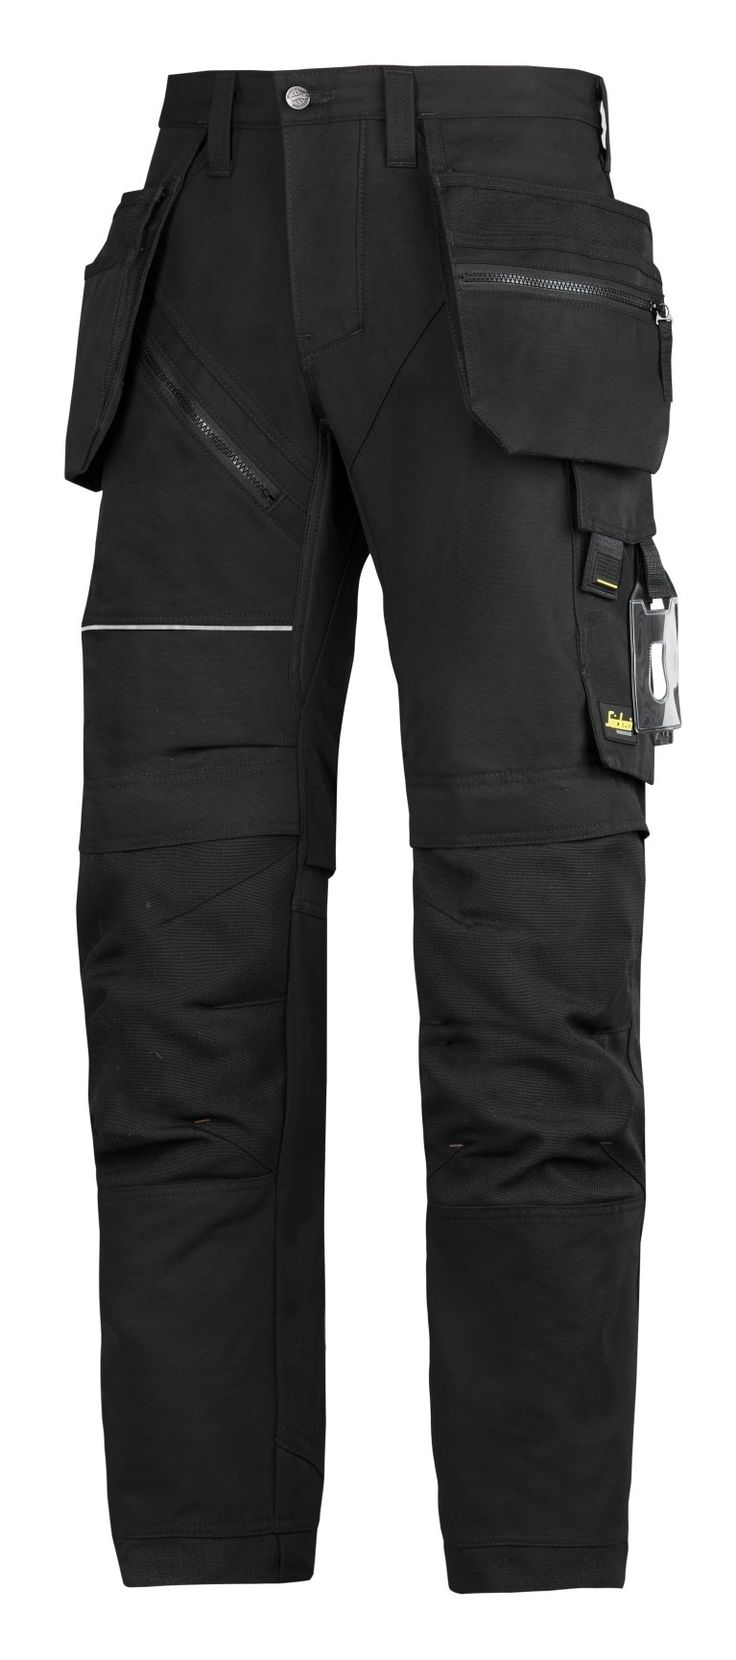 Tough design for rough work. Modern heavy-duty work #trousers combining amazing fit with reinforced functionality. Features Cordura® 1000 reinforced knee protection, built-in ventilation and stretch gusset in crotch for hardwearing comfort at work.